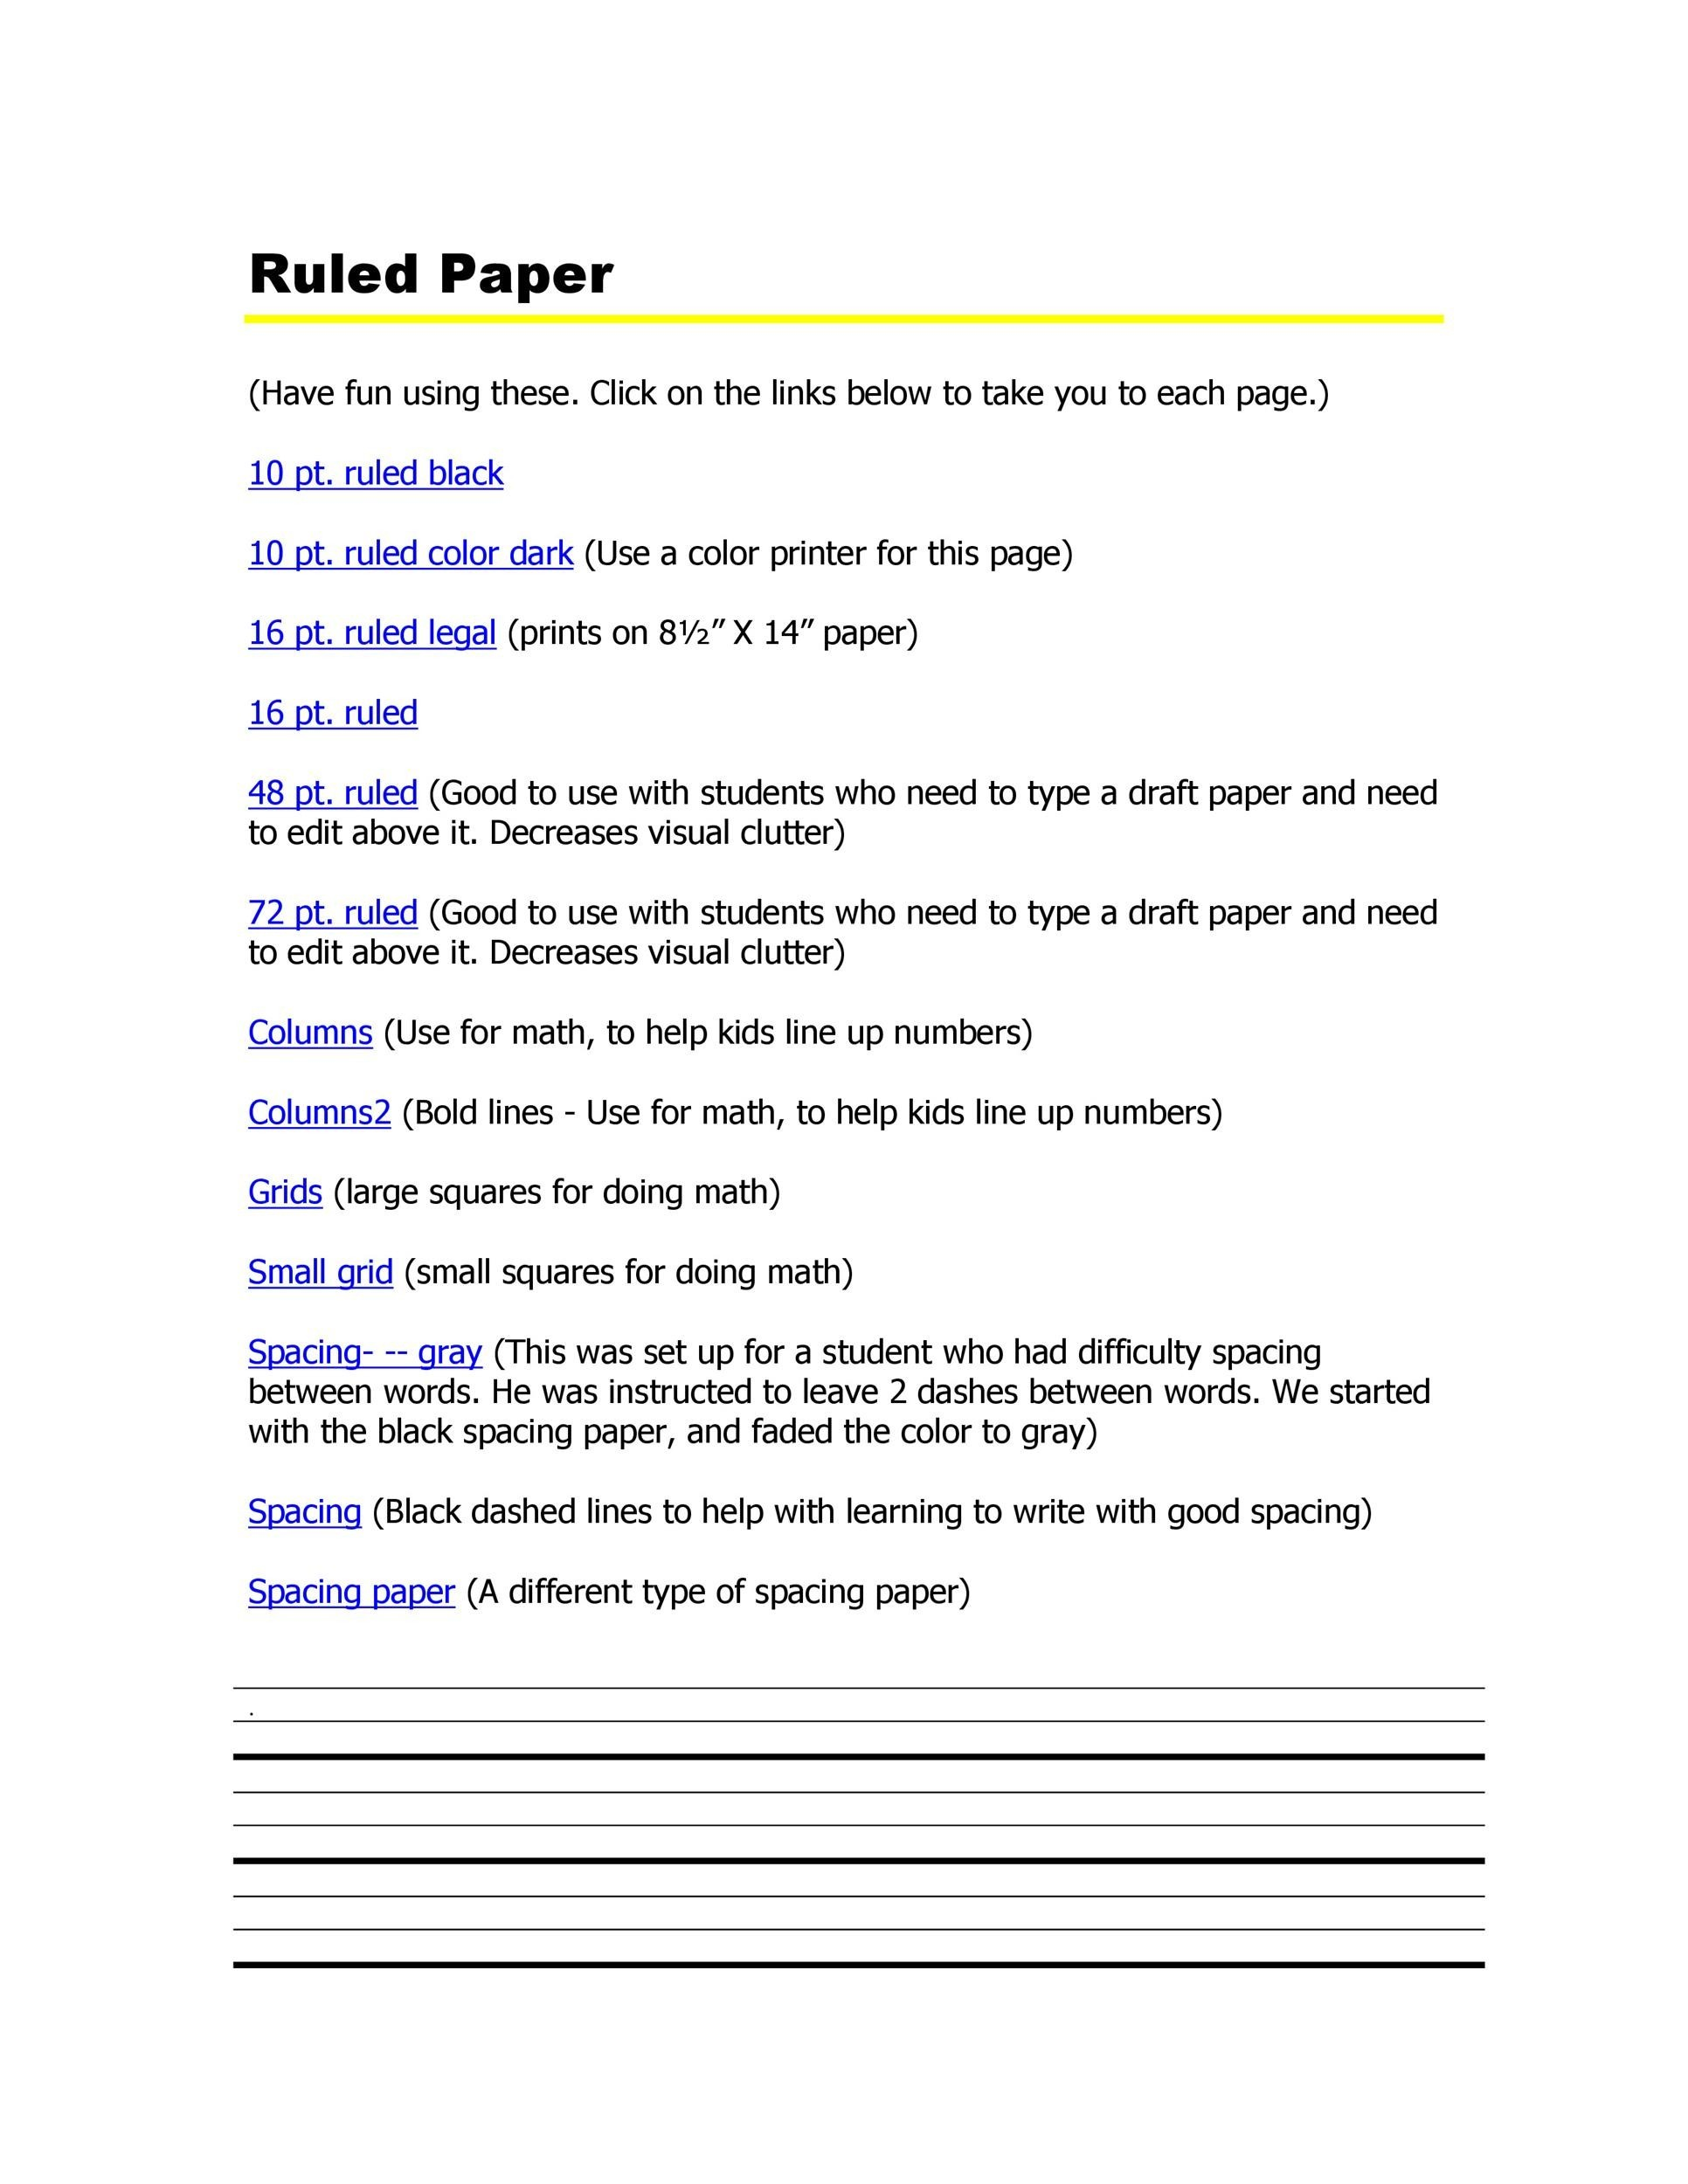 Free lined paper template 05